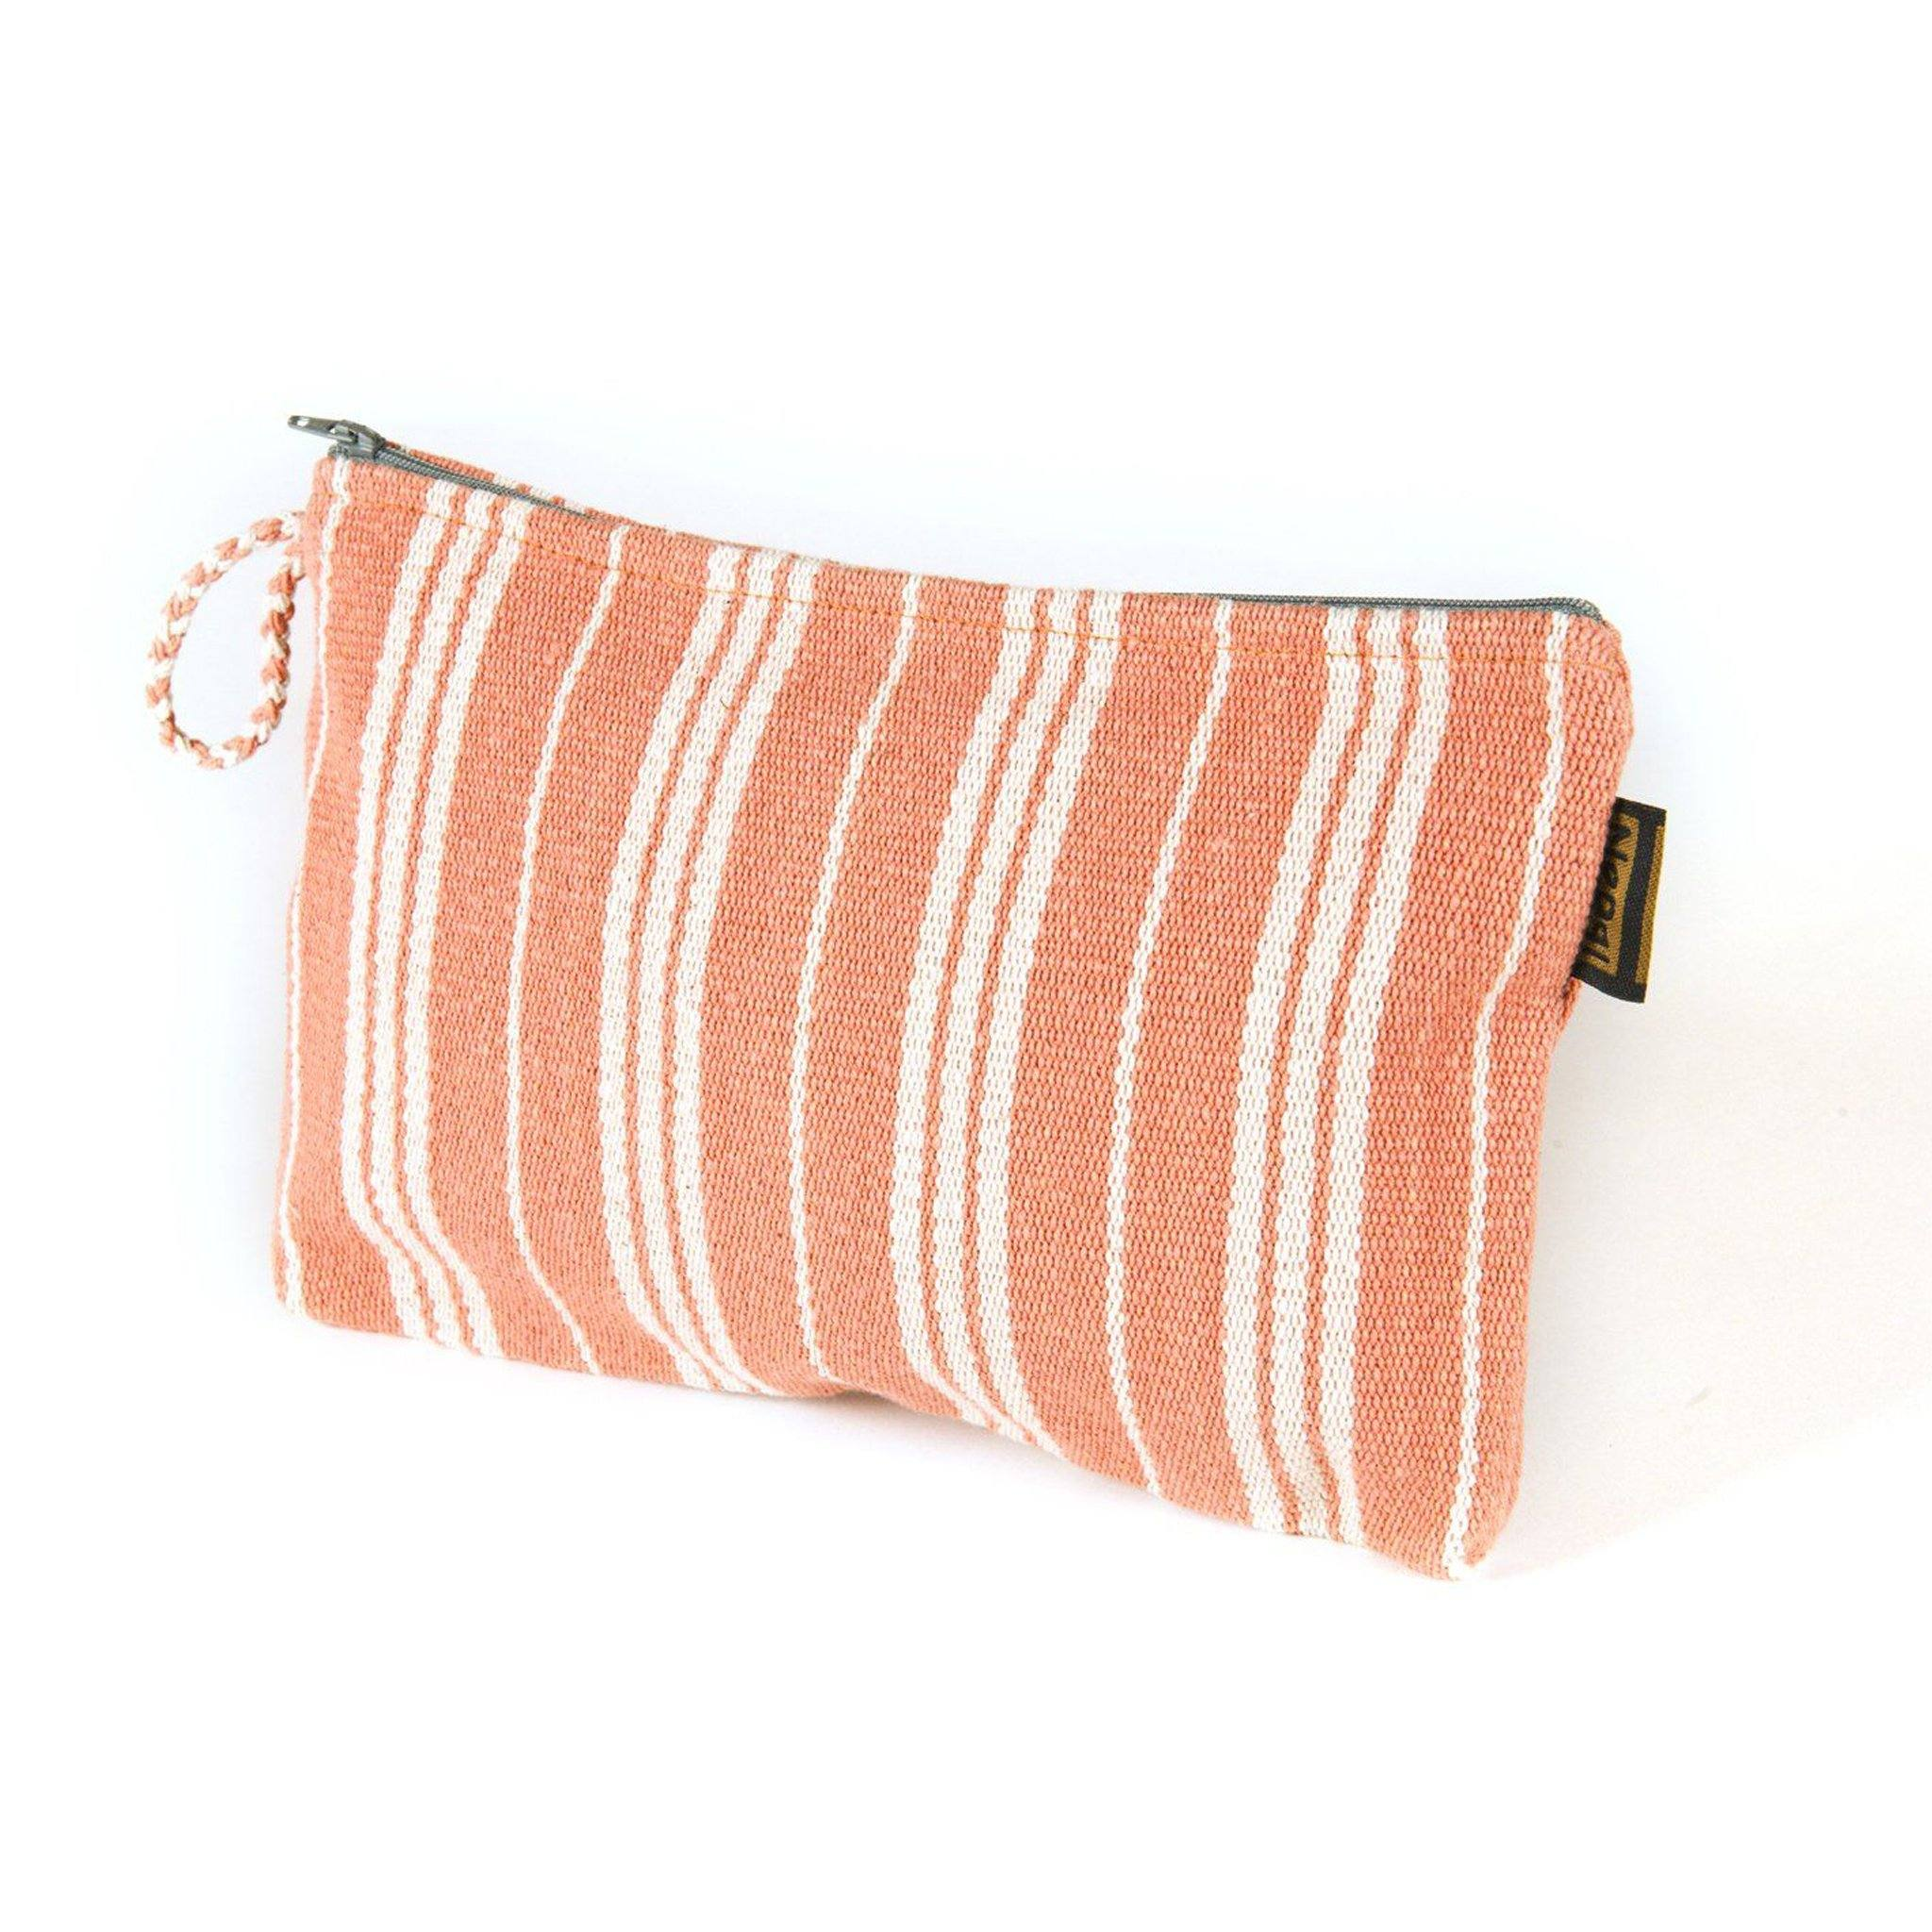 Salmon Pouch Bag WSDP